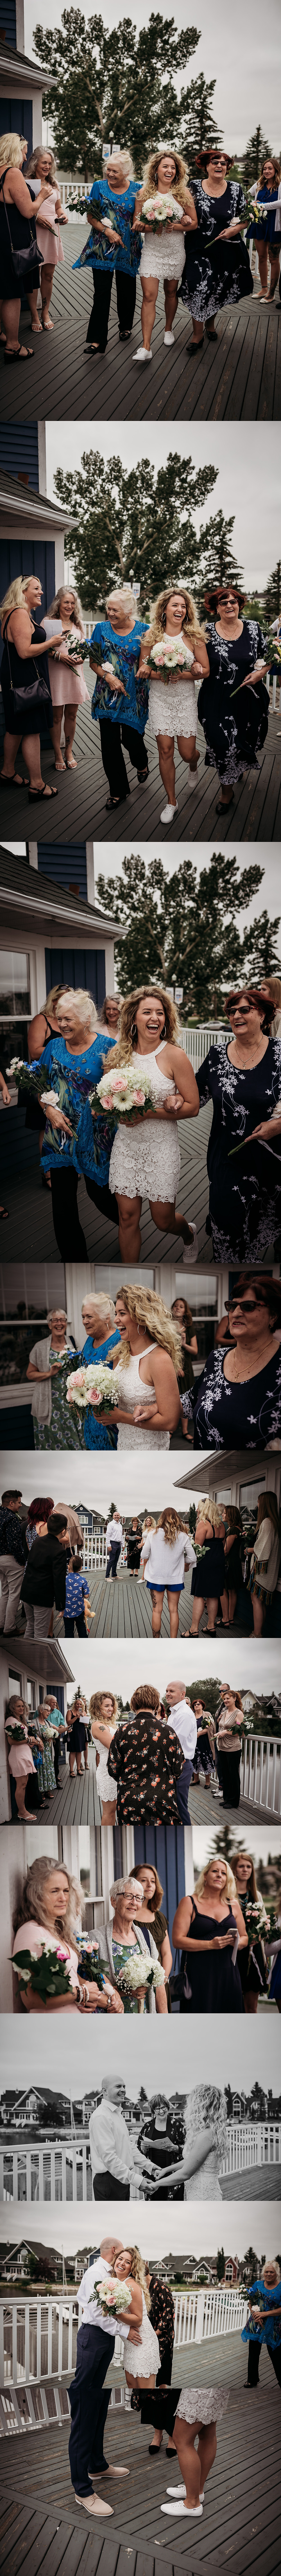 bride and groom collage of ceremony